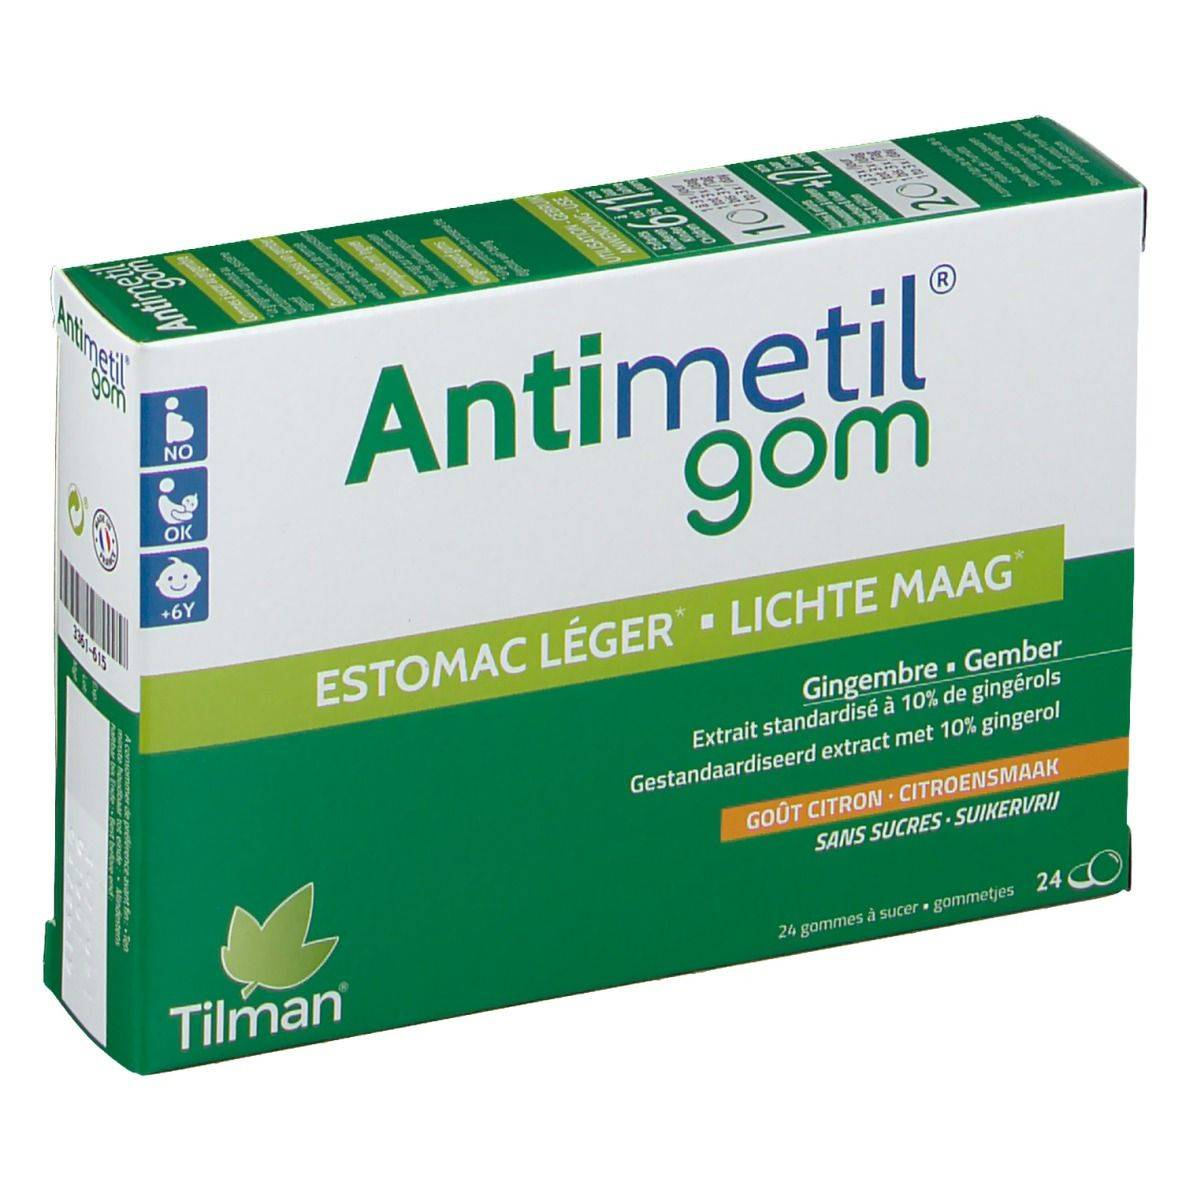 Antimetil® Antimetil Gom pc(s) chewing-gum(s)